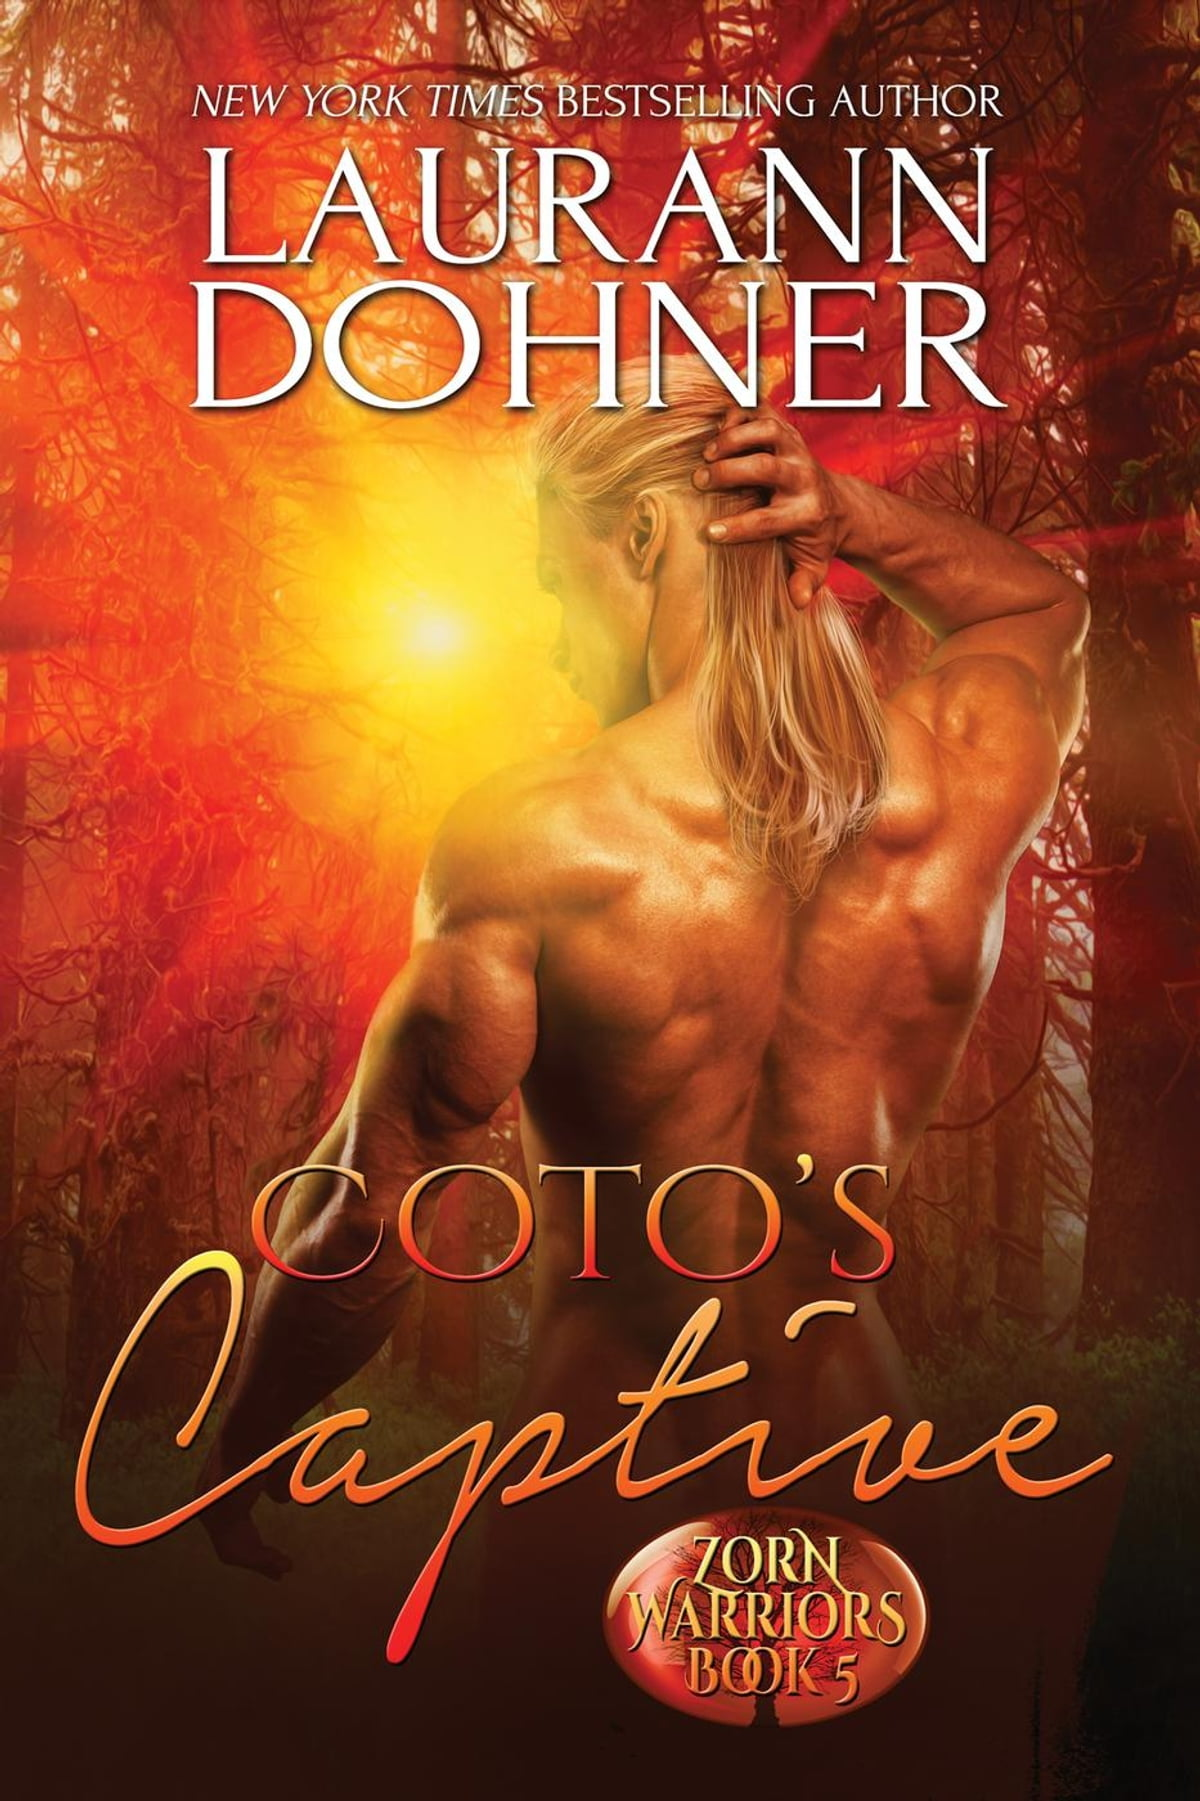 Coto's Captive  Zorn Warriors, #5 Ebook By Laurann Dohner